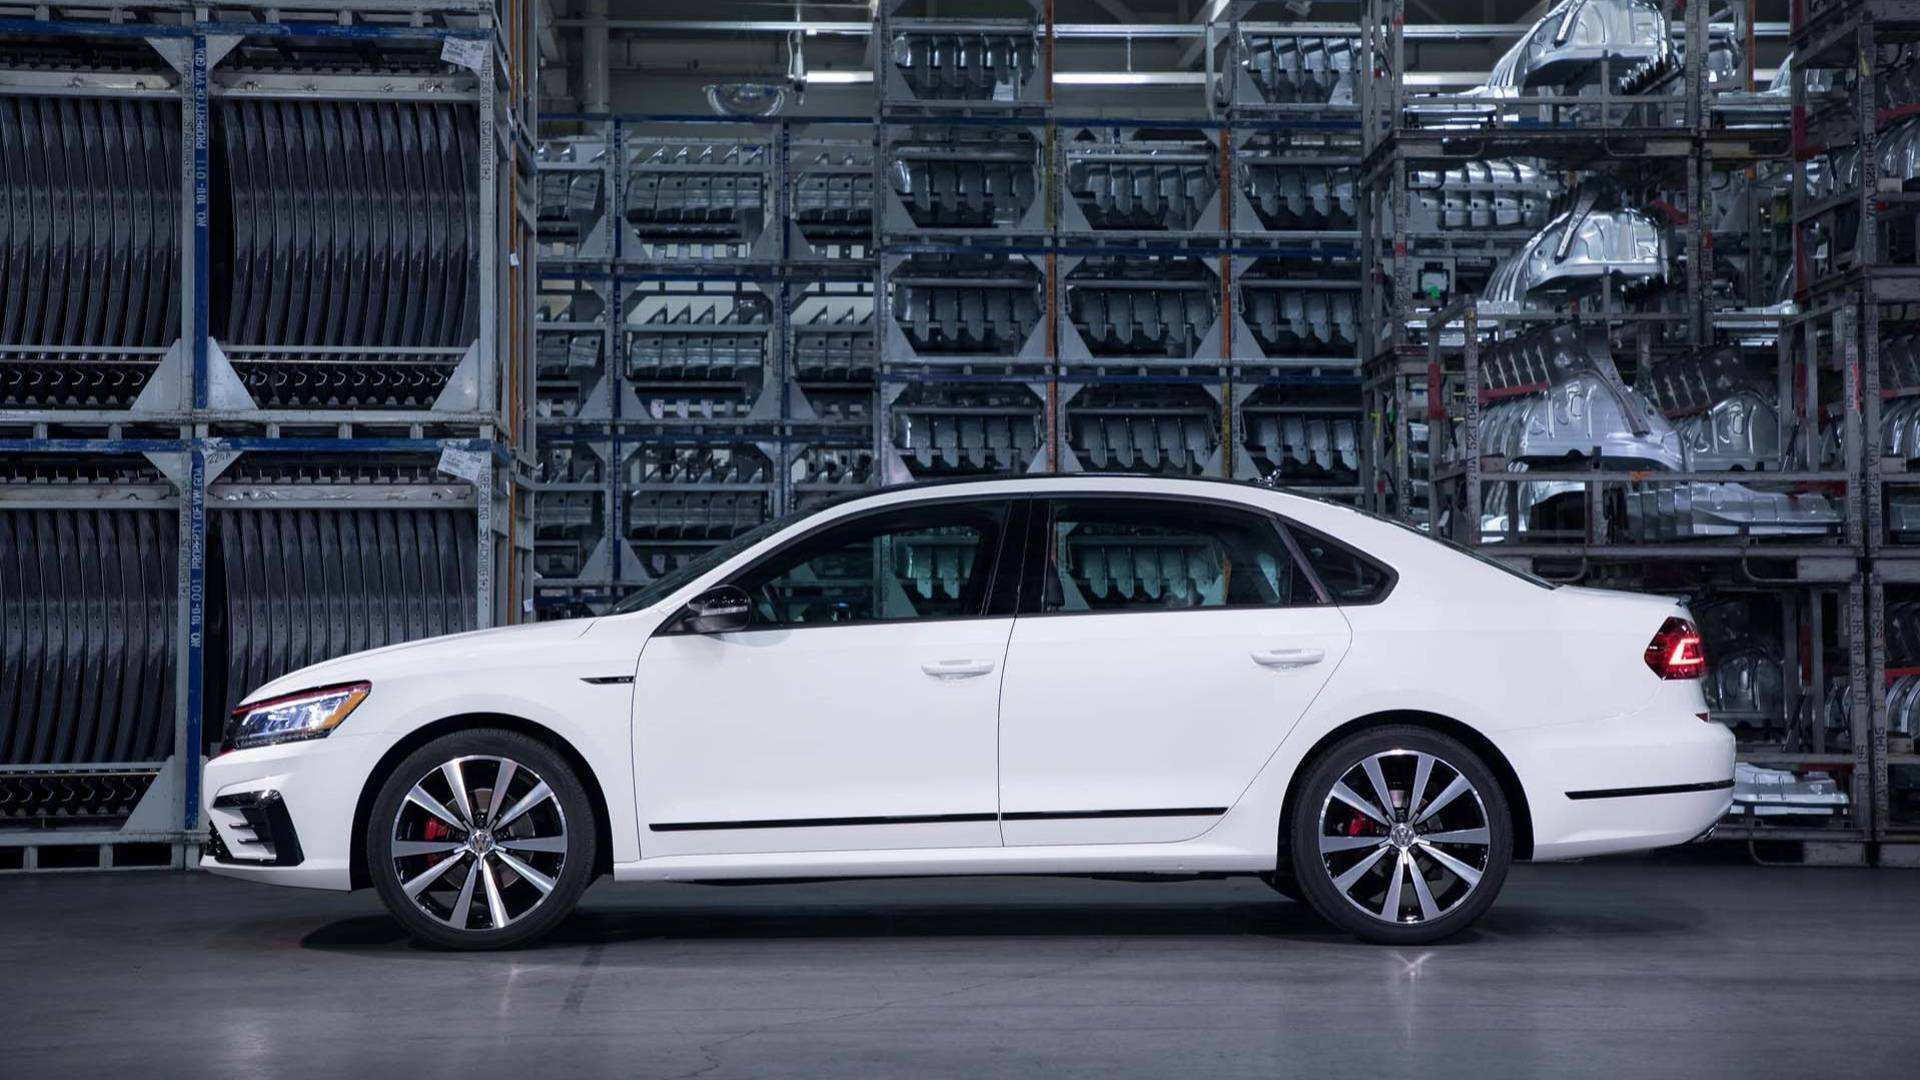 32 Best Review 2020 VW Passat Tdi Specs and Review for 2020 VW Passat Tdi